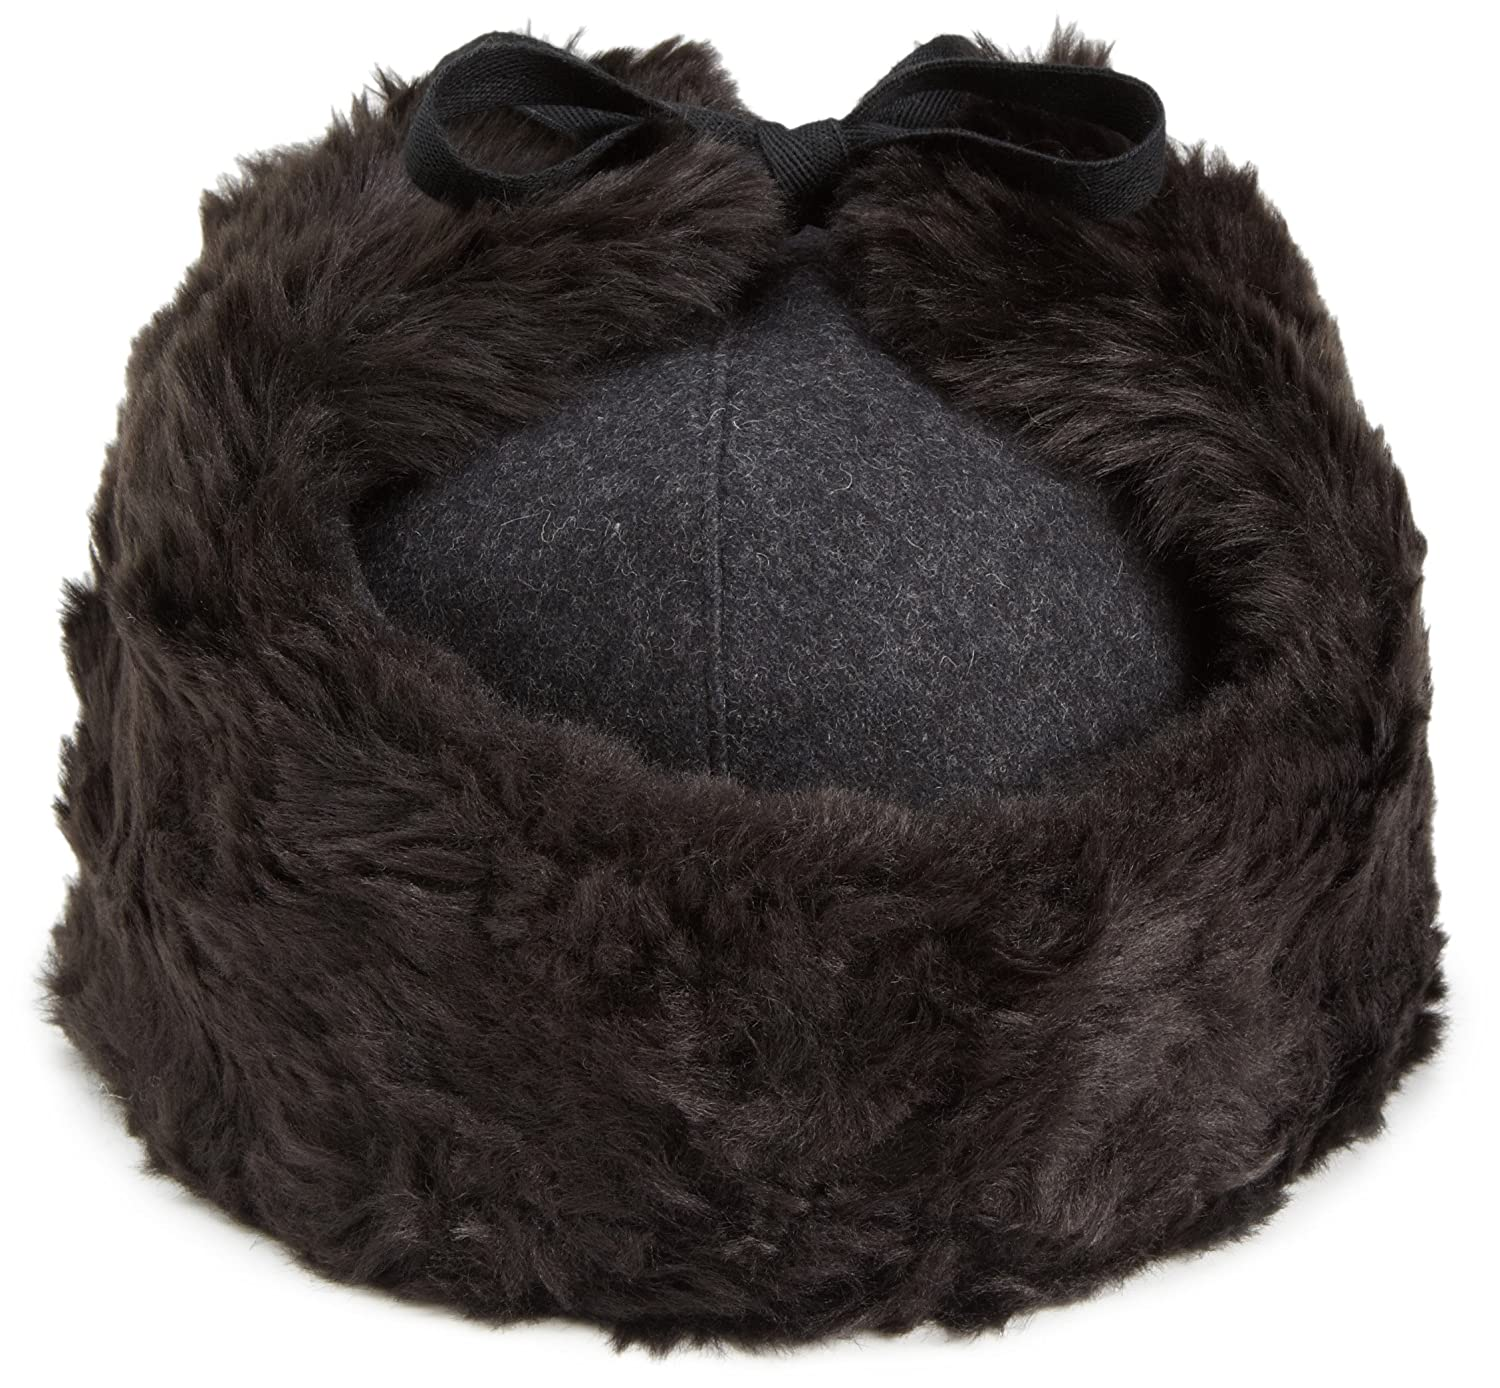 Amazon.com  Kangol Men s Wool Ushanka Hat  Clothing db804d15e86b